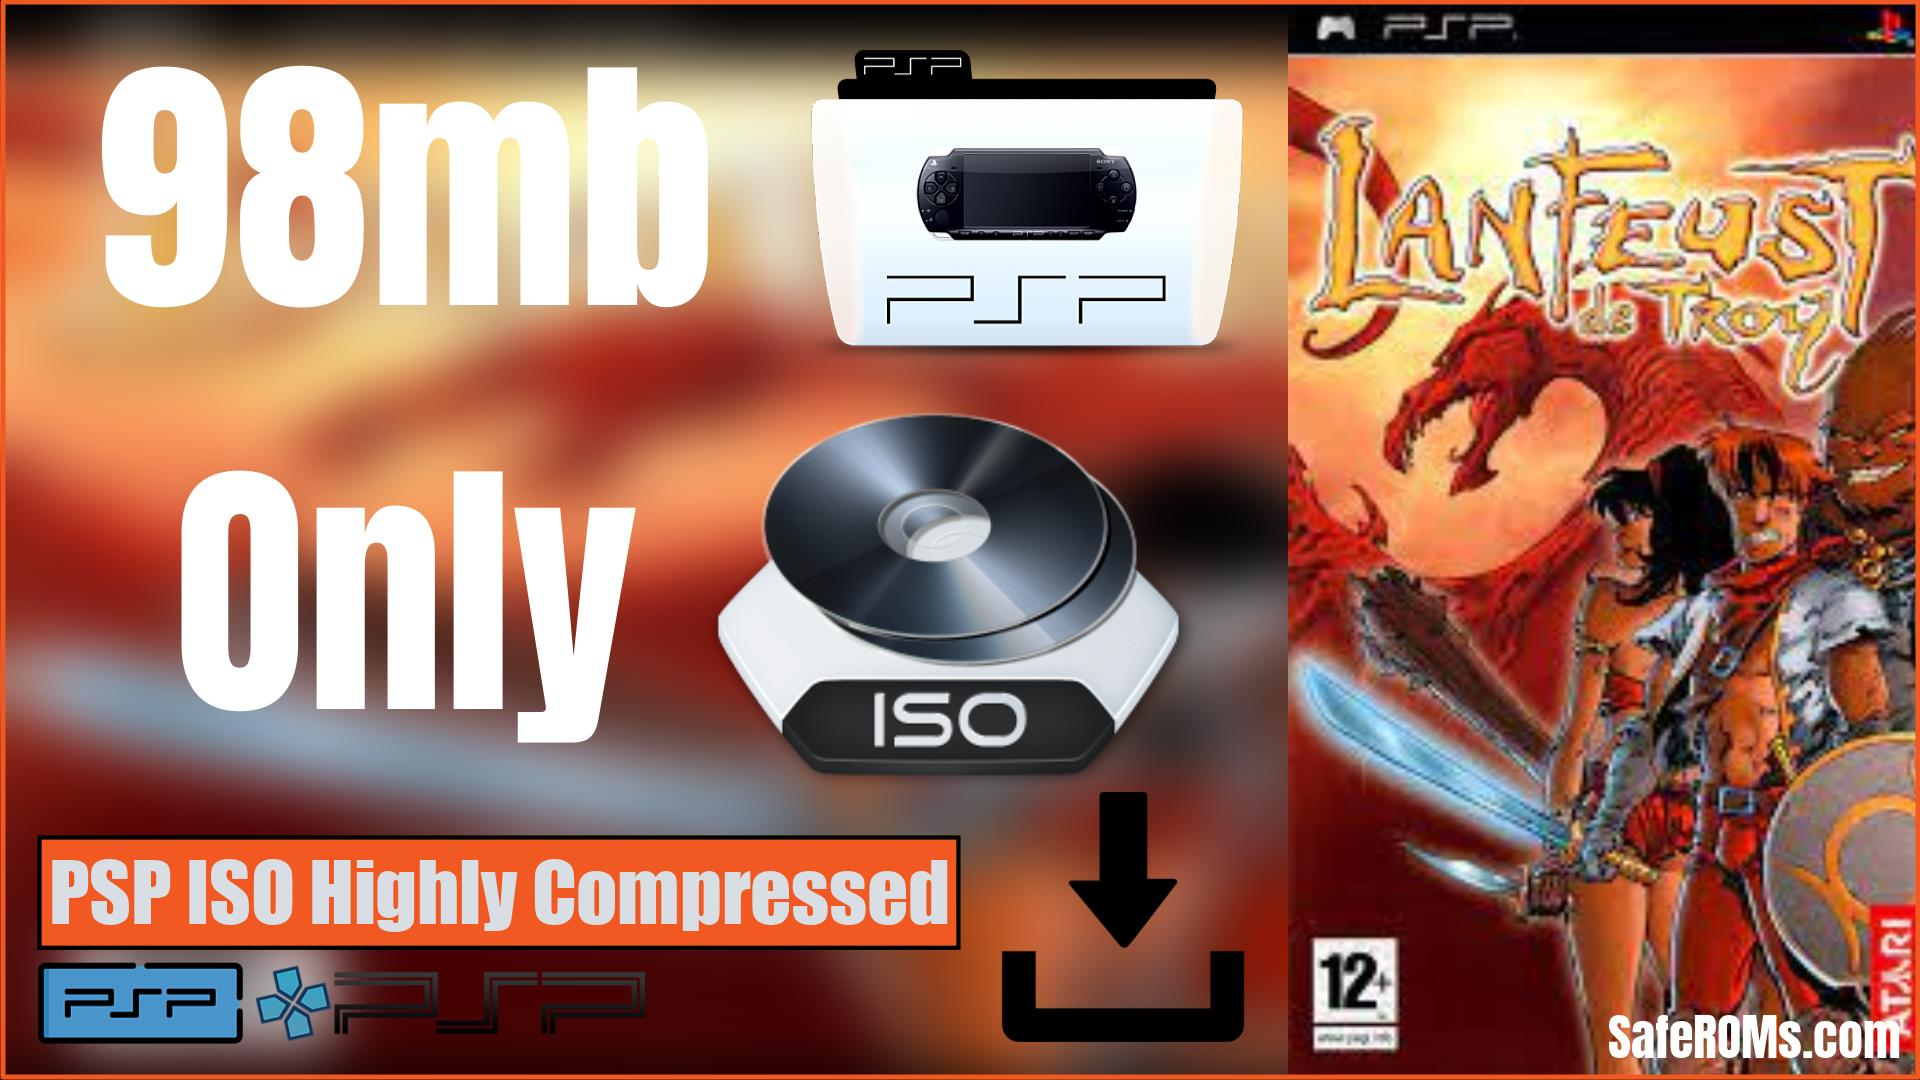 Lanfeust of Troy PSP ISO Highy Compressed Download